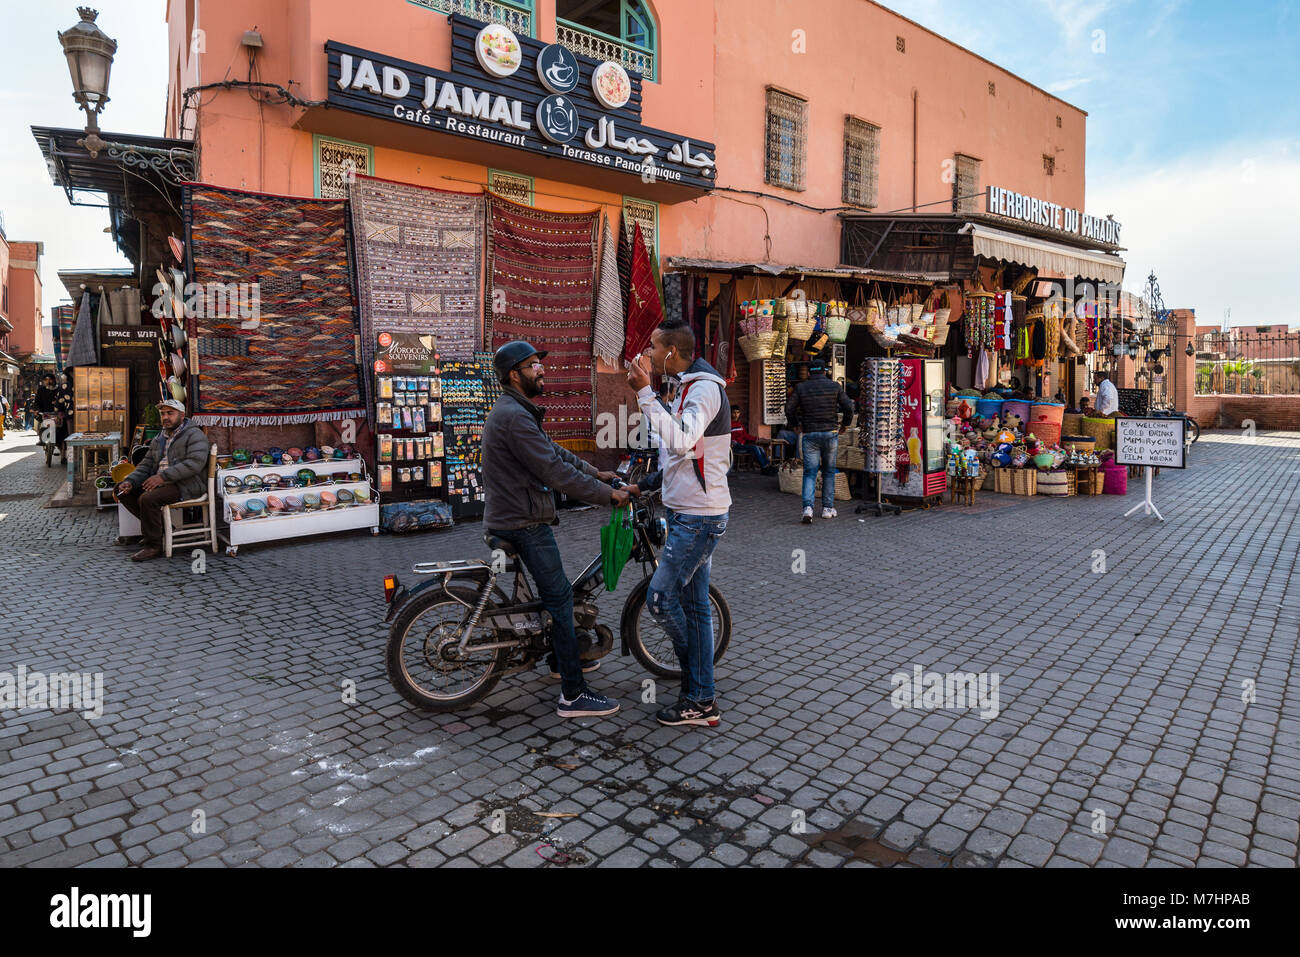 Marrakesh, Morocco - December 8, 2016: Unidentified people at a street in the medina of Marrakesh, Morocco. With Stock Photo